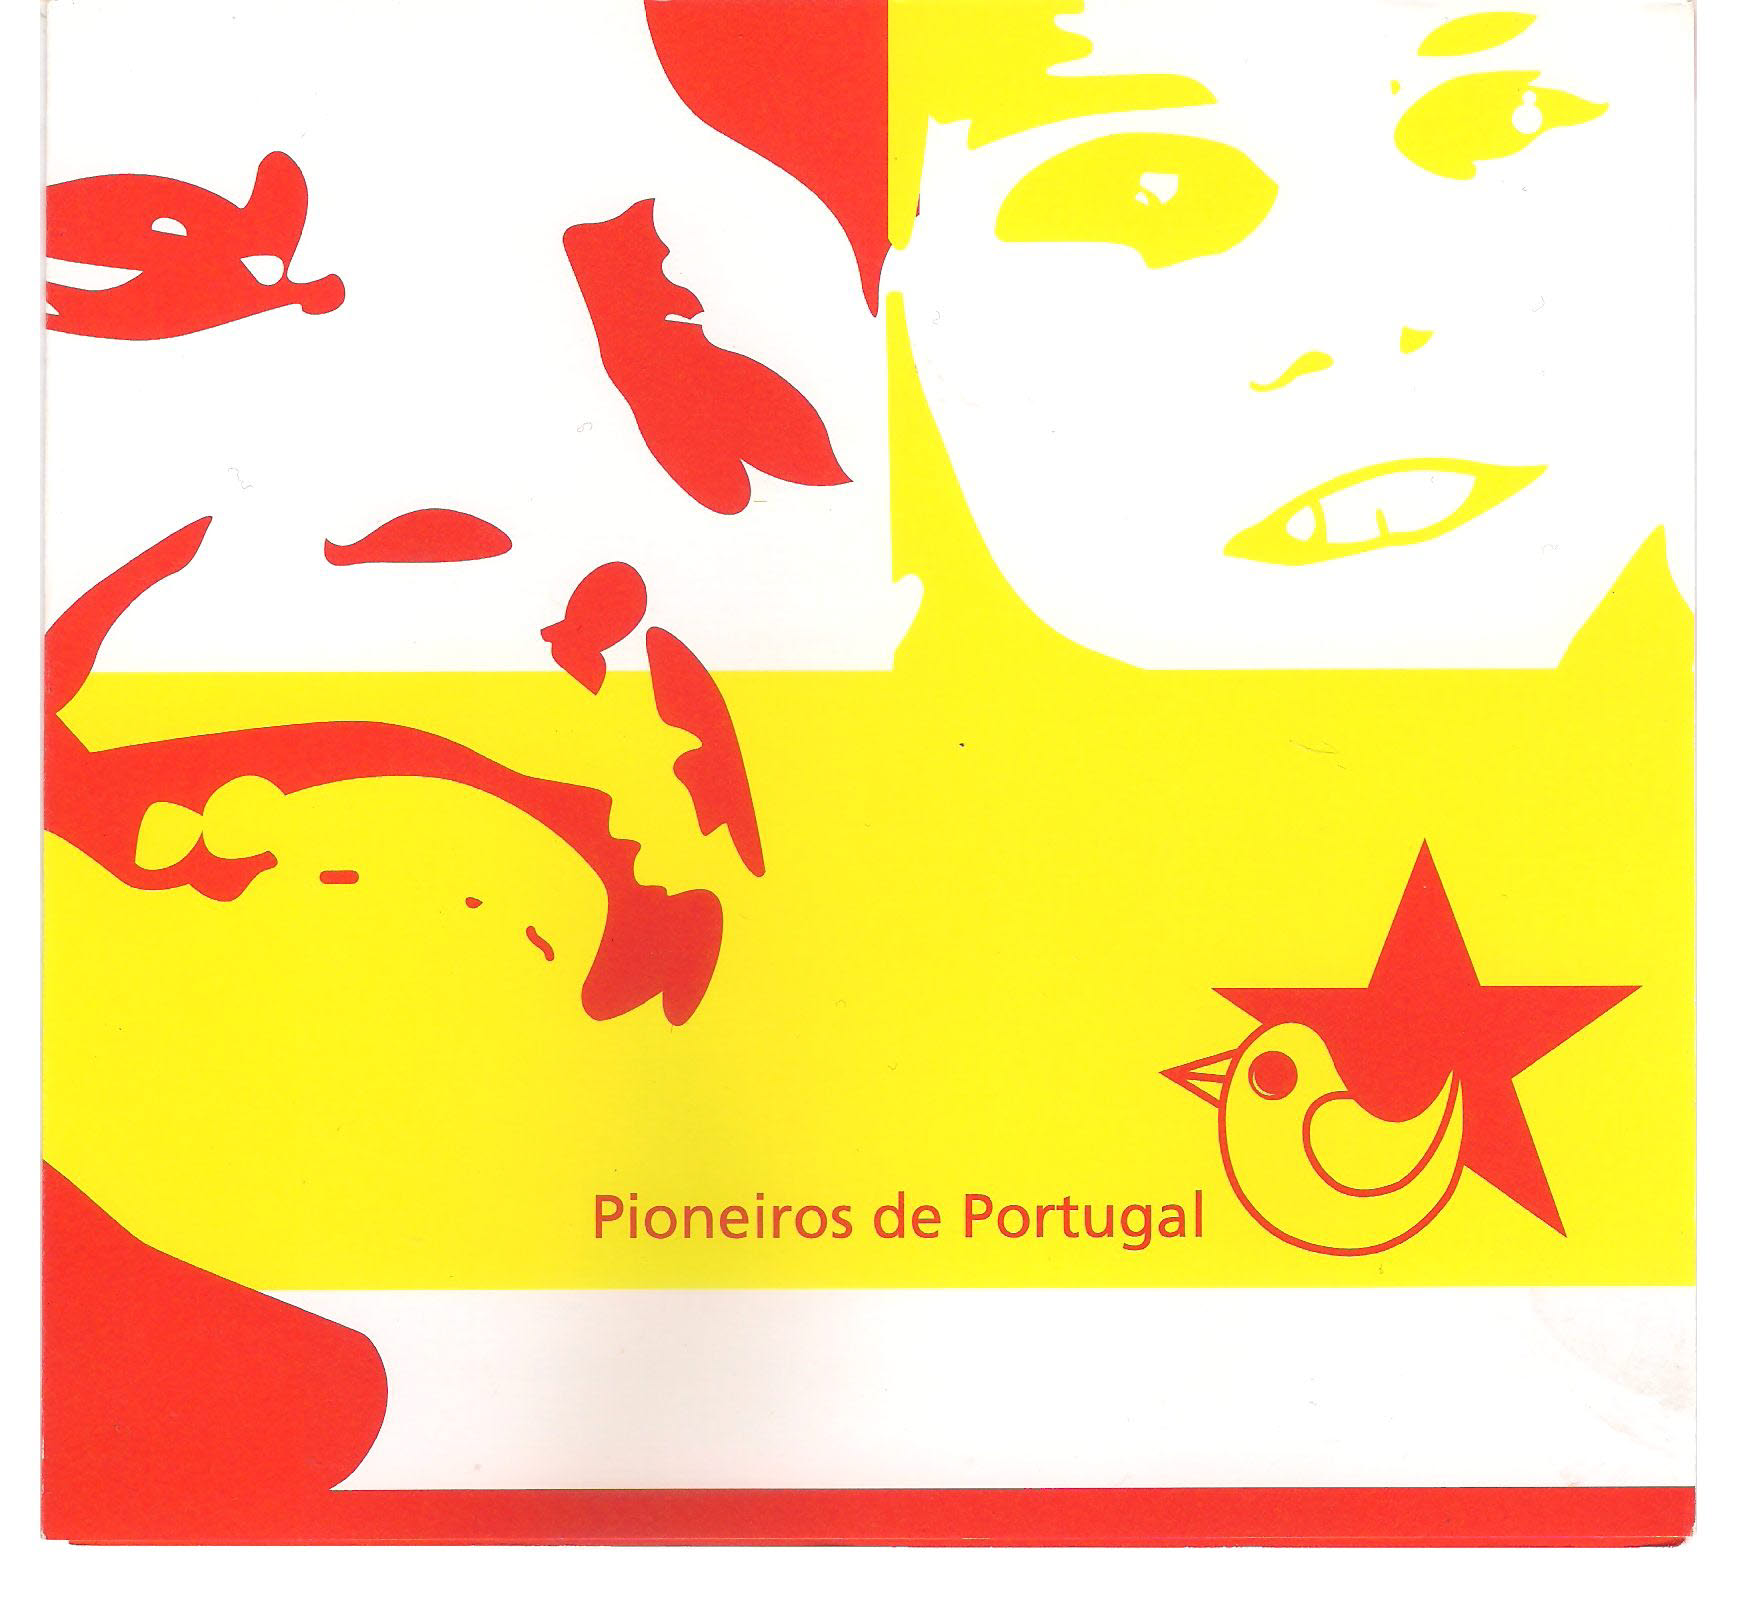 Copy of pioneiros panfleto1